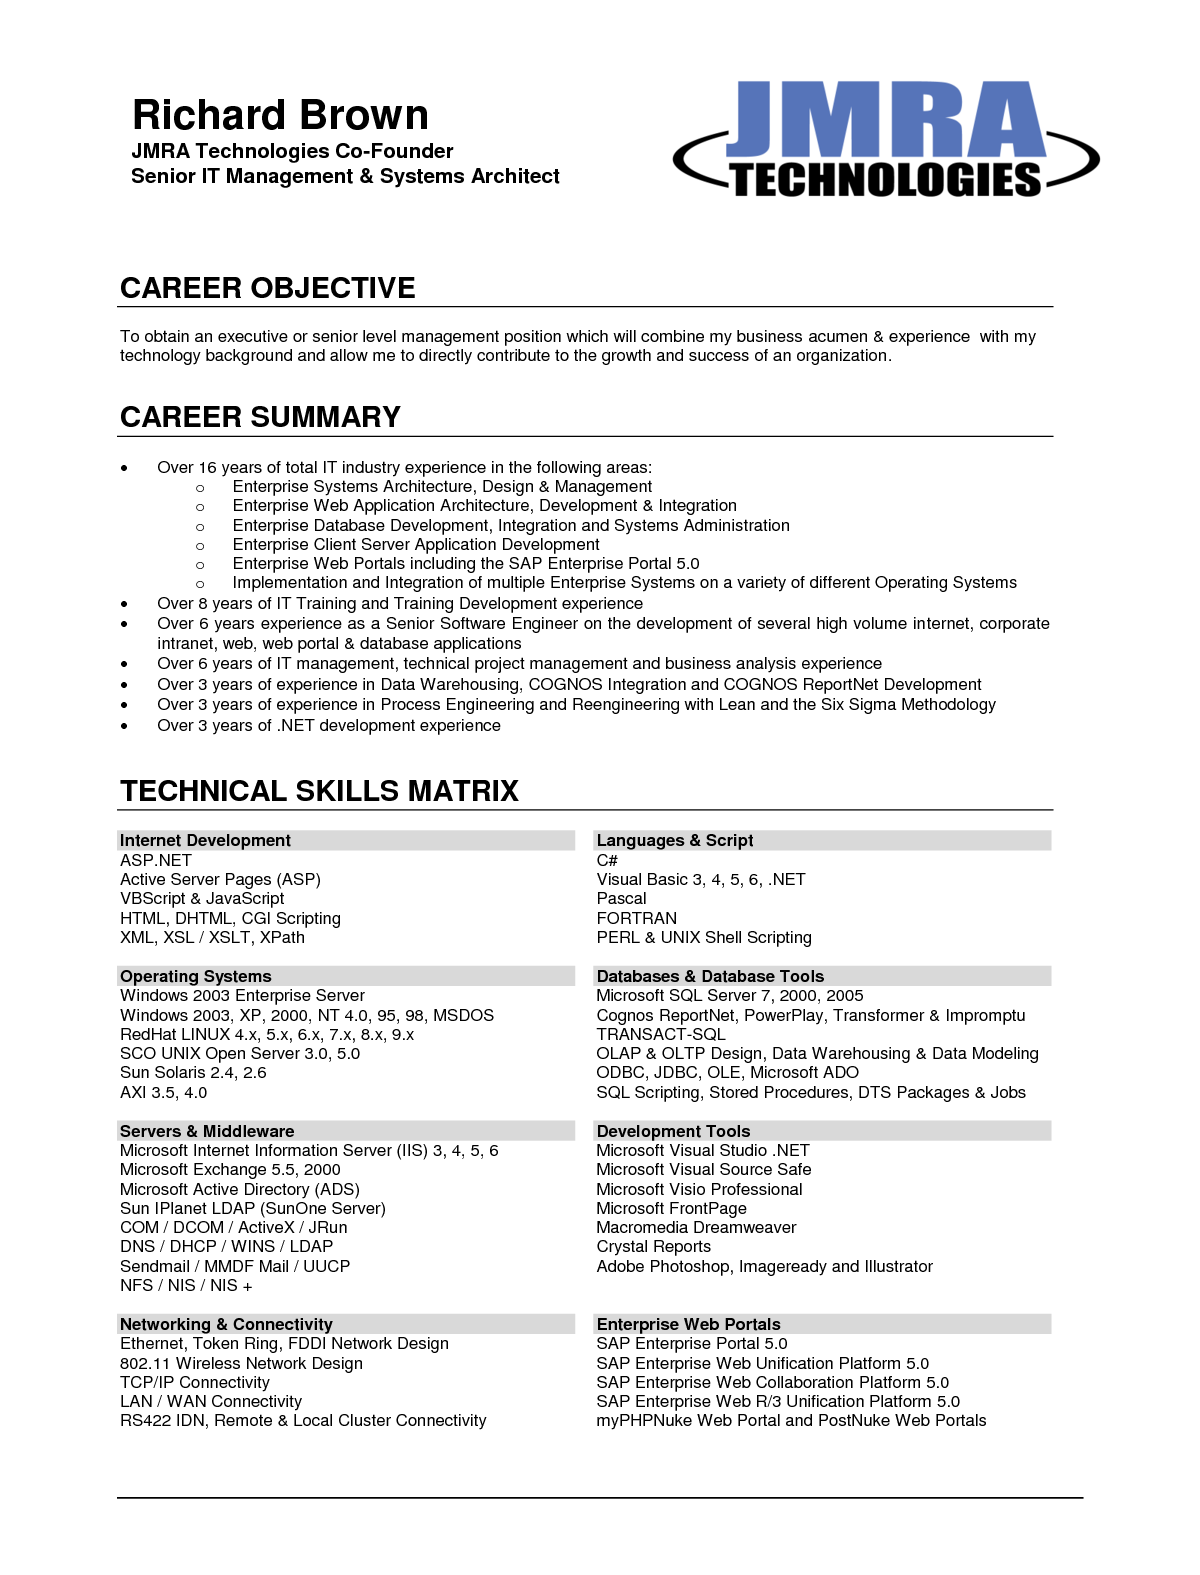 Data Modeling Resume Job Objective  Pinterest  Resume Objective And Template